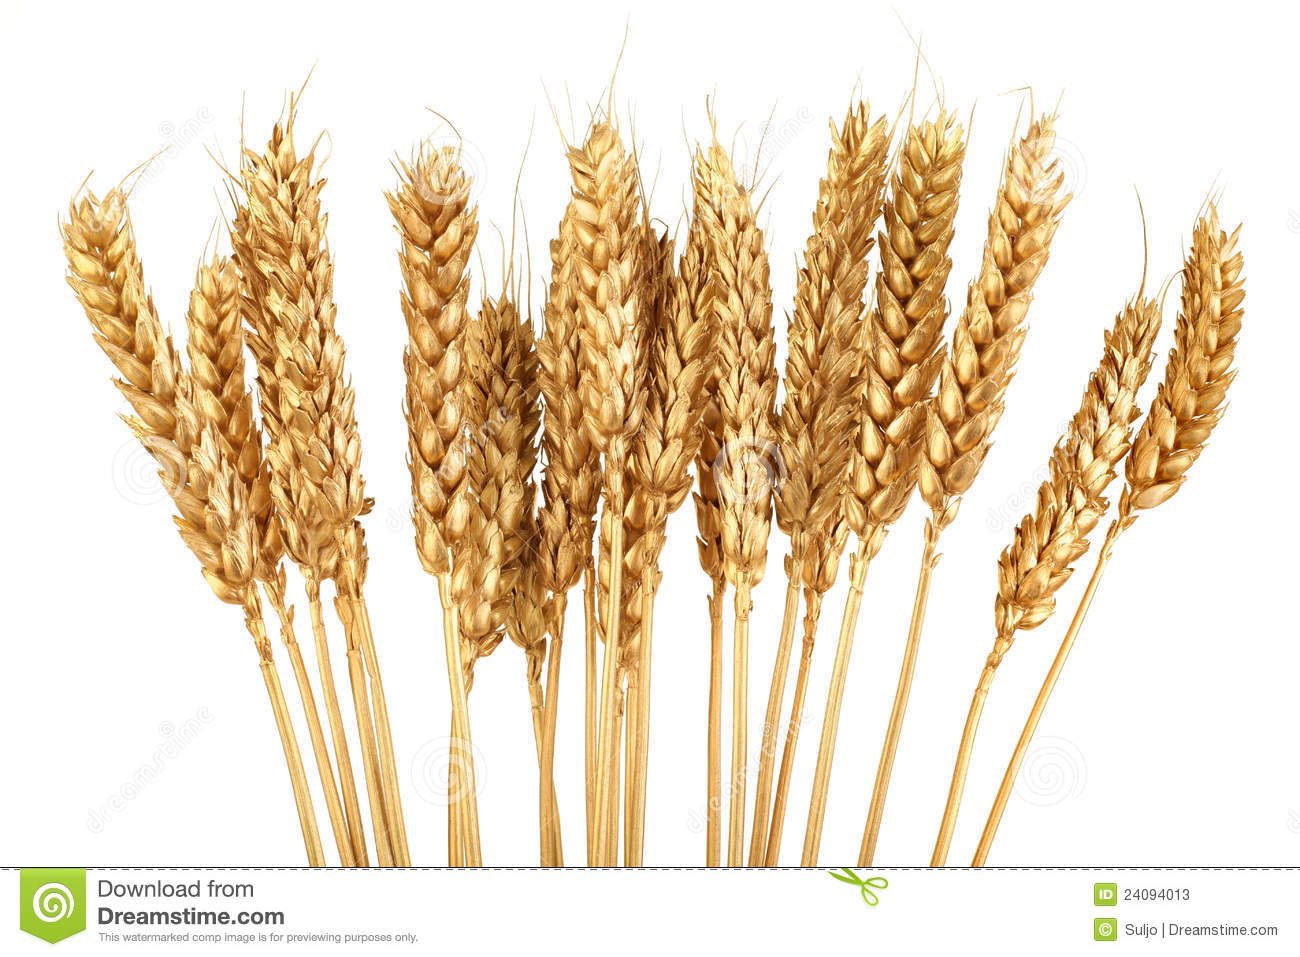 Bunch of Golden Wheat Isolated on White Background.